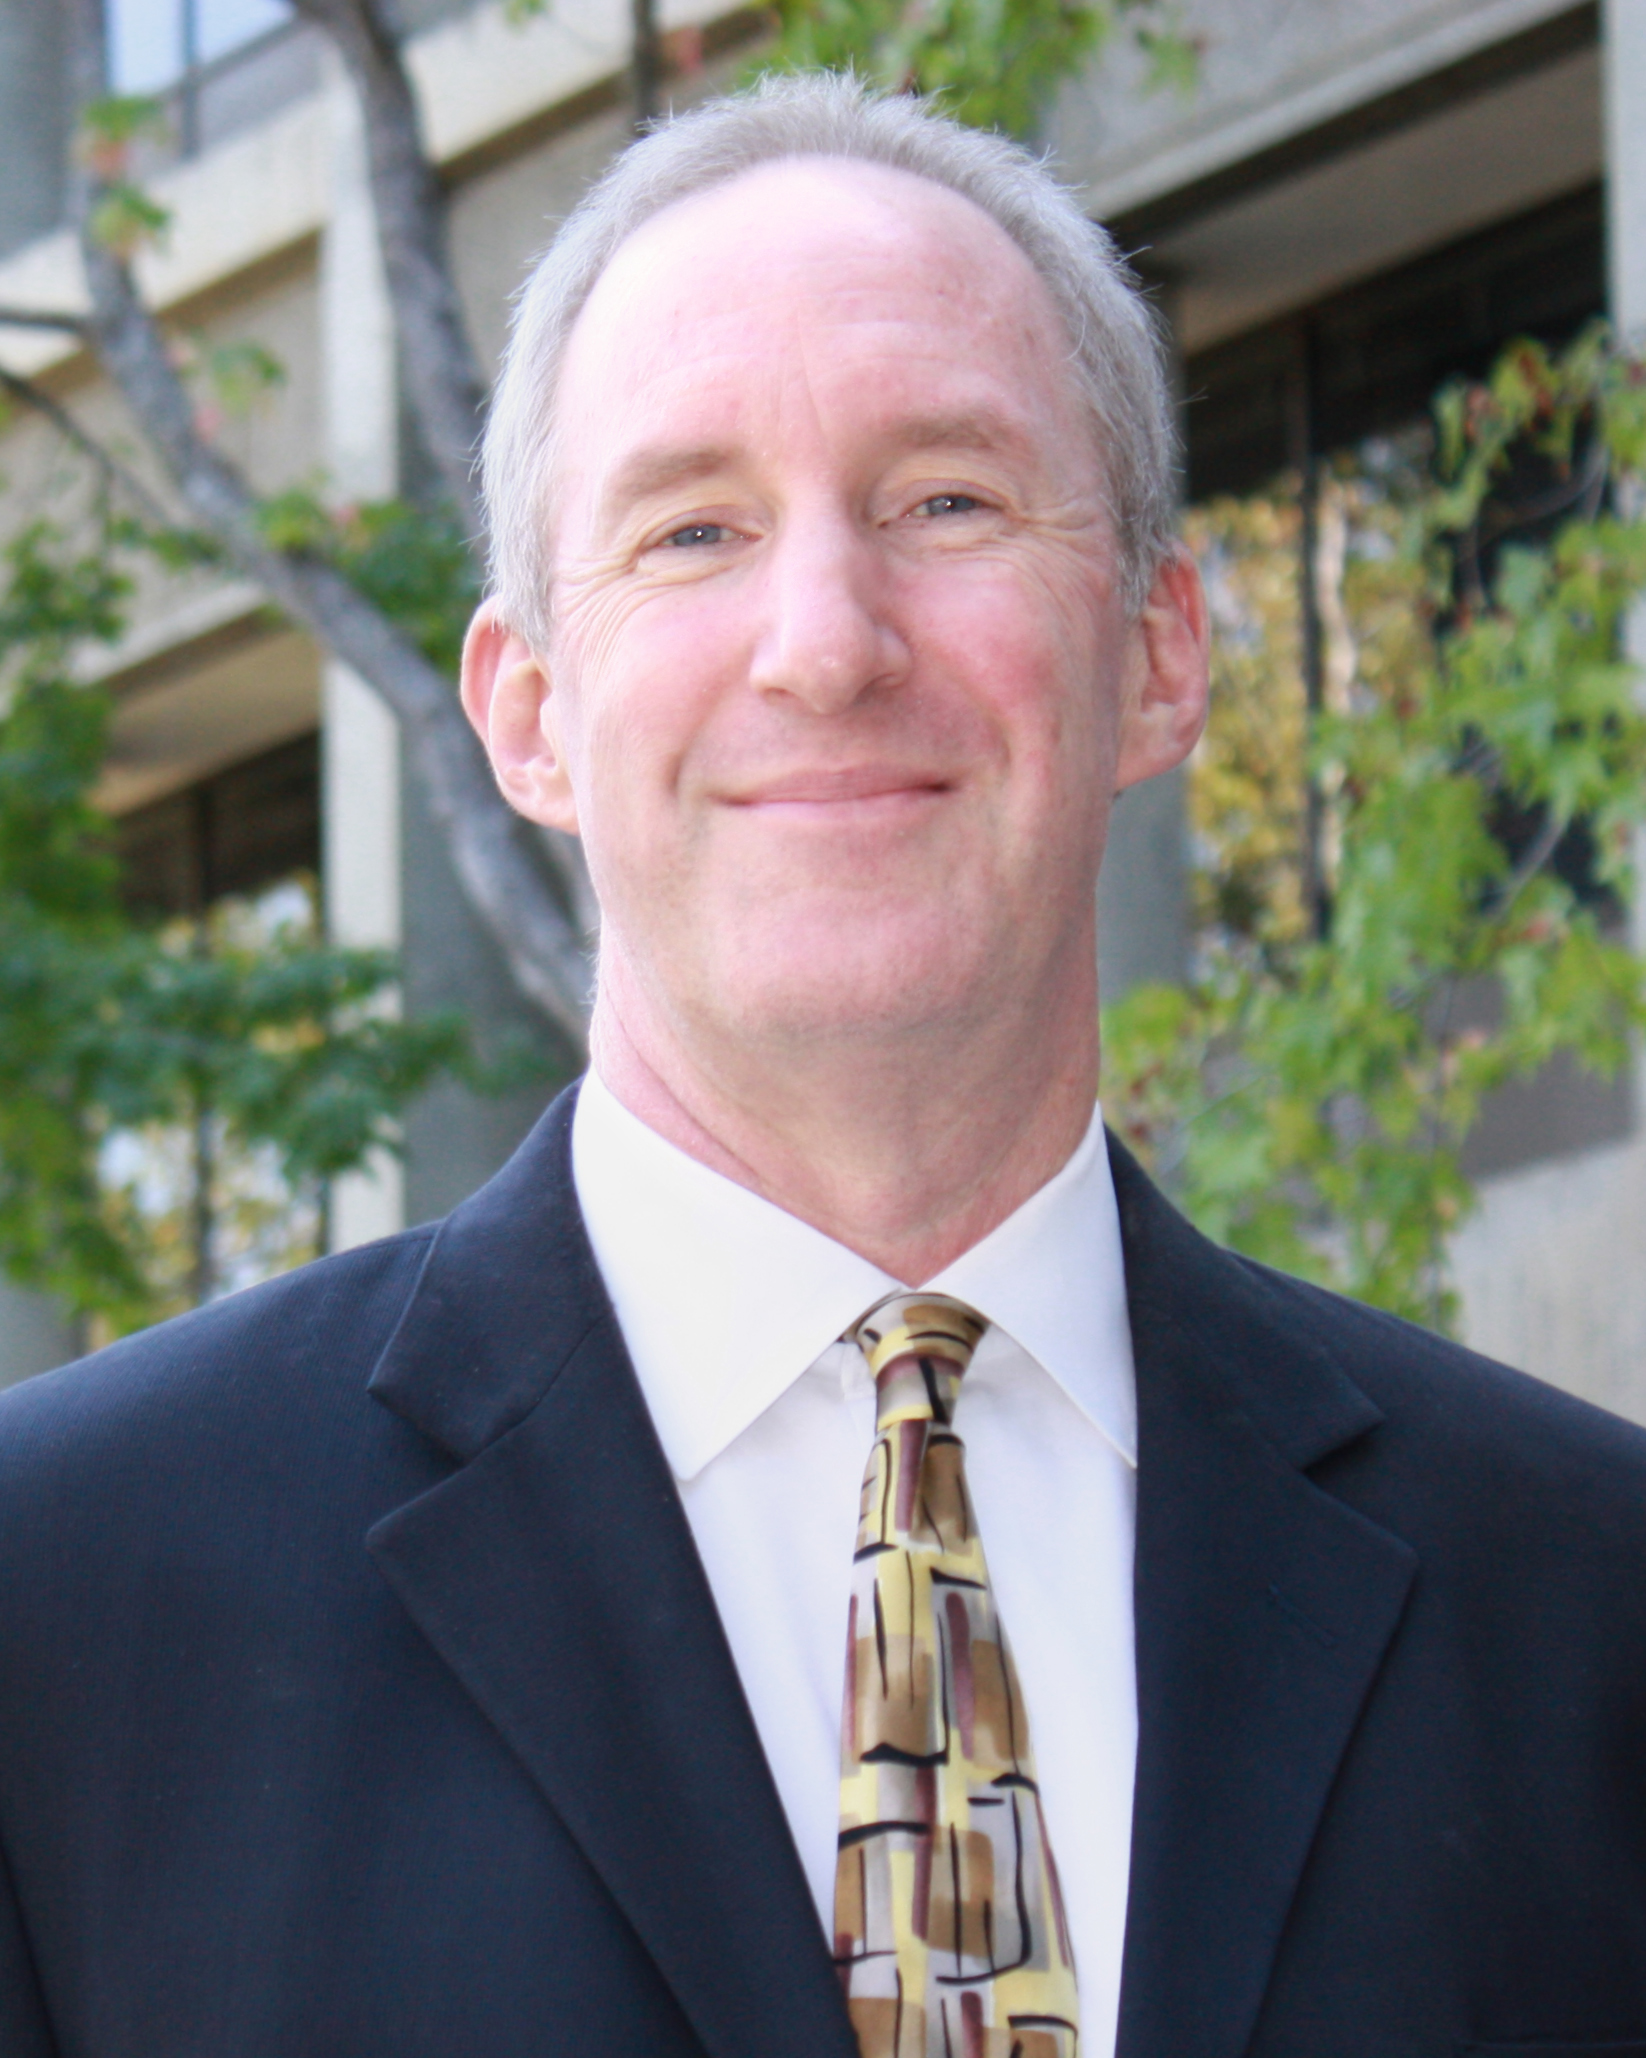 Photo of Glenn Fox, PLS Associate Director